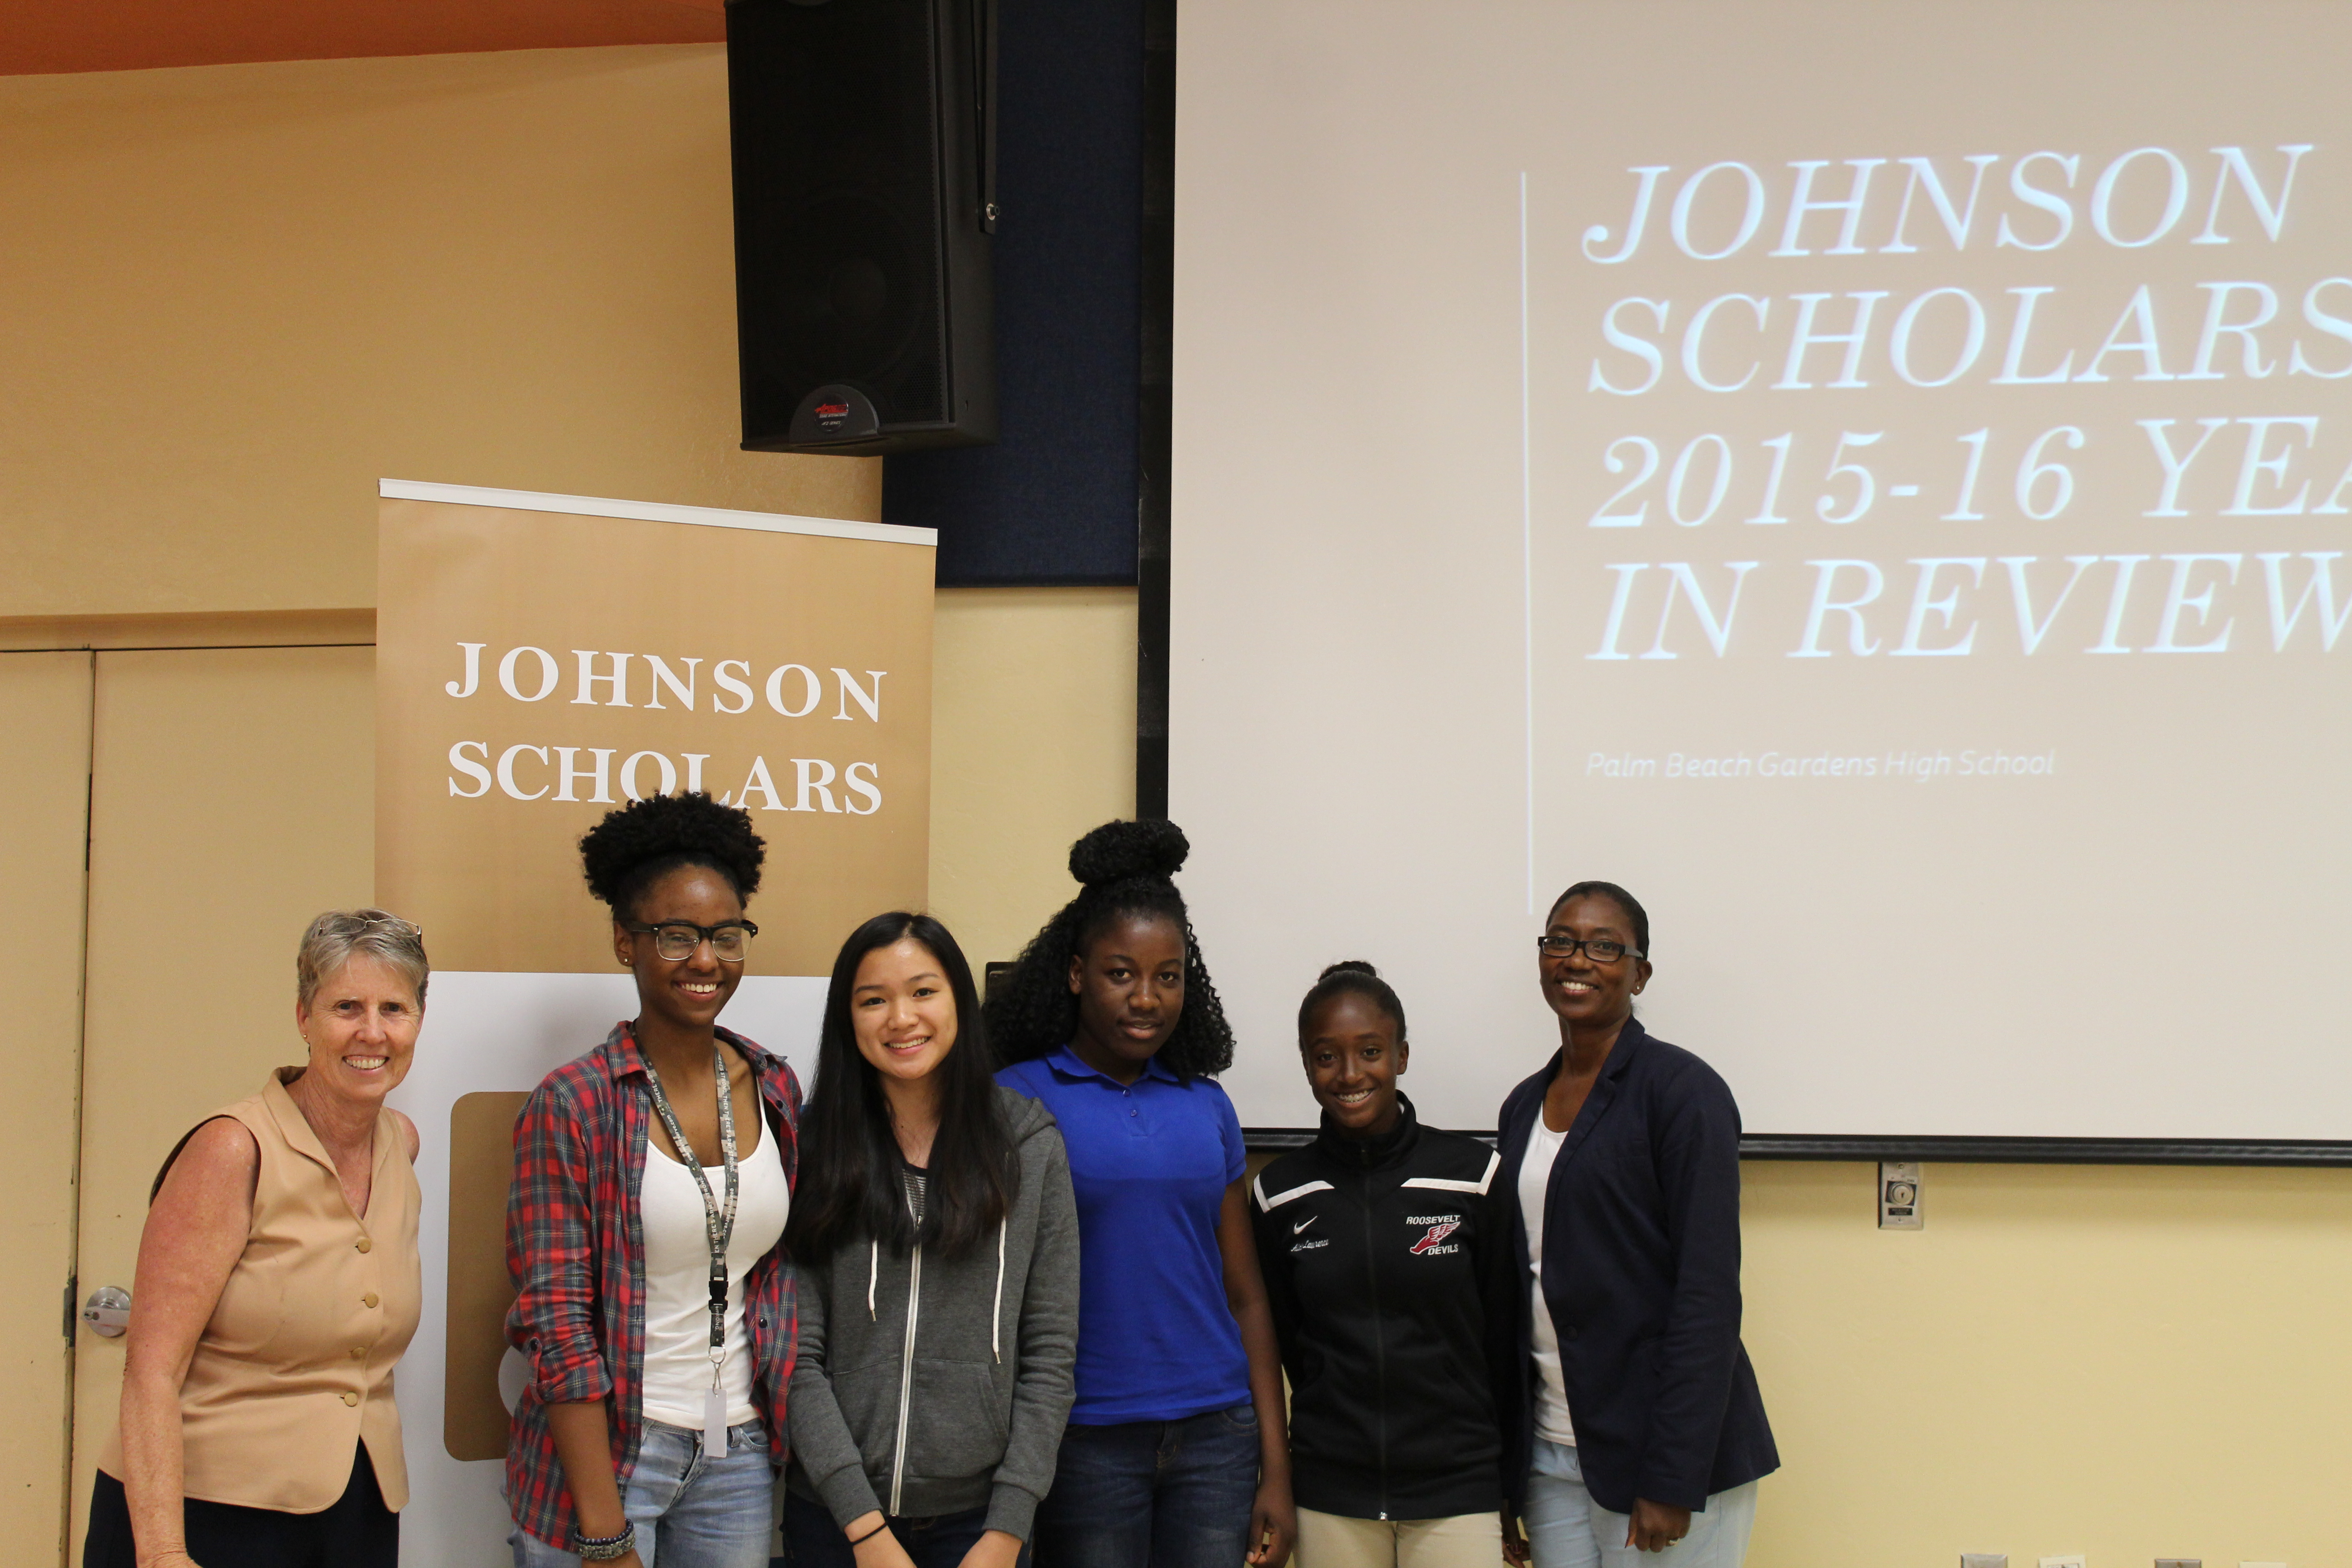 teachers and students posing in front of johnson scholars sign